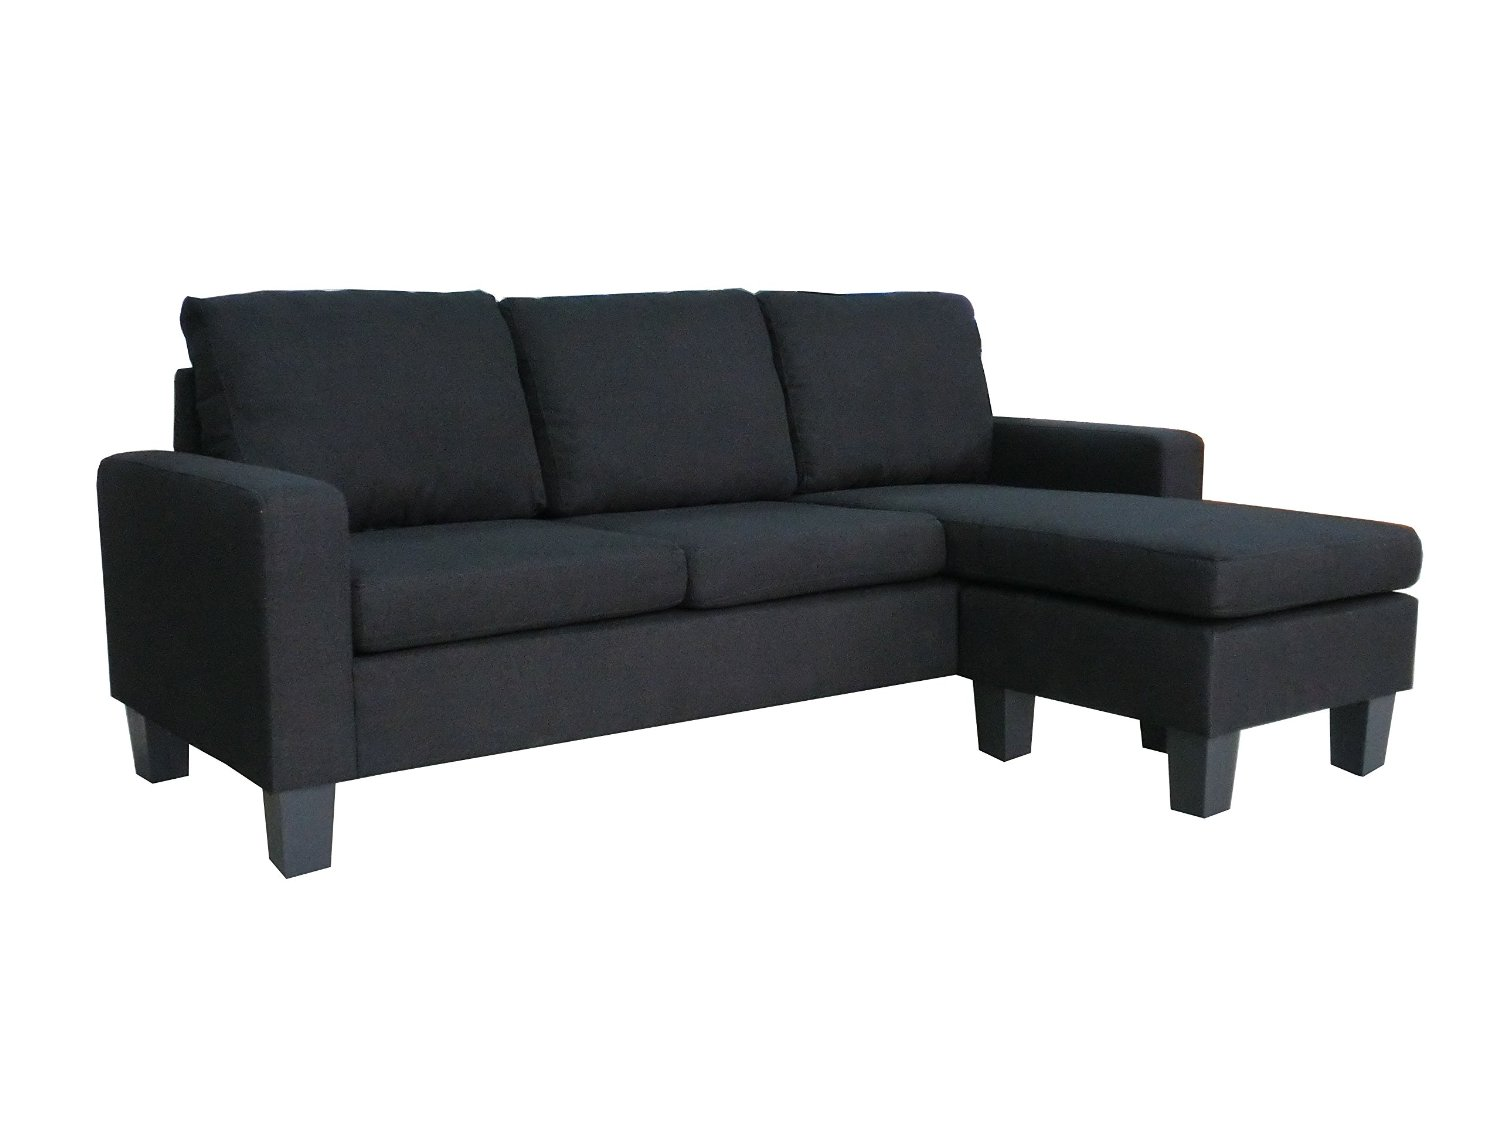 elegant black Sectional Couches to make your living room more beautiful